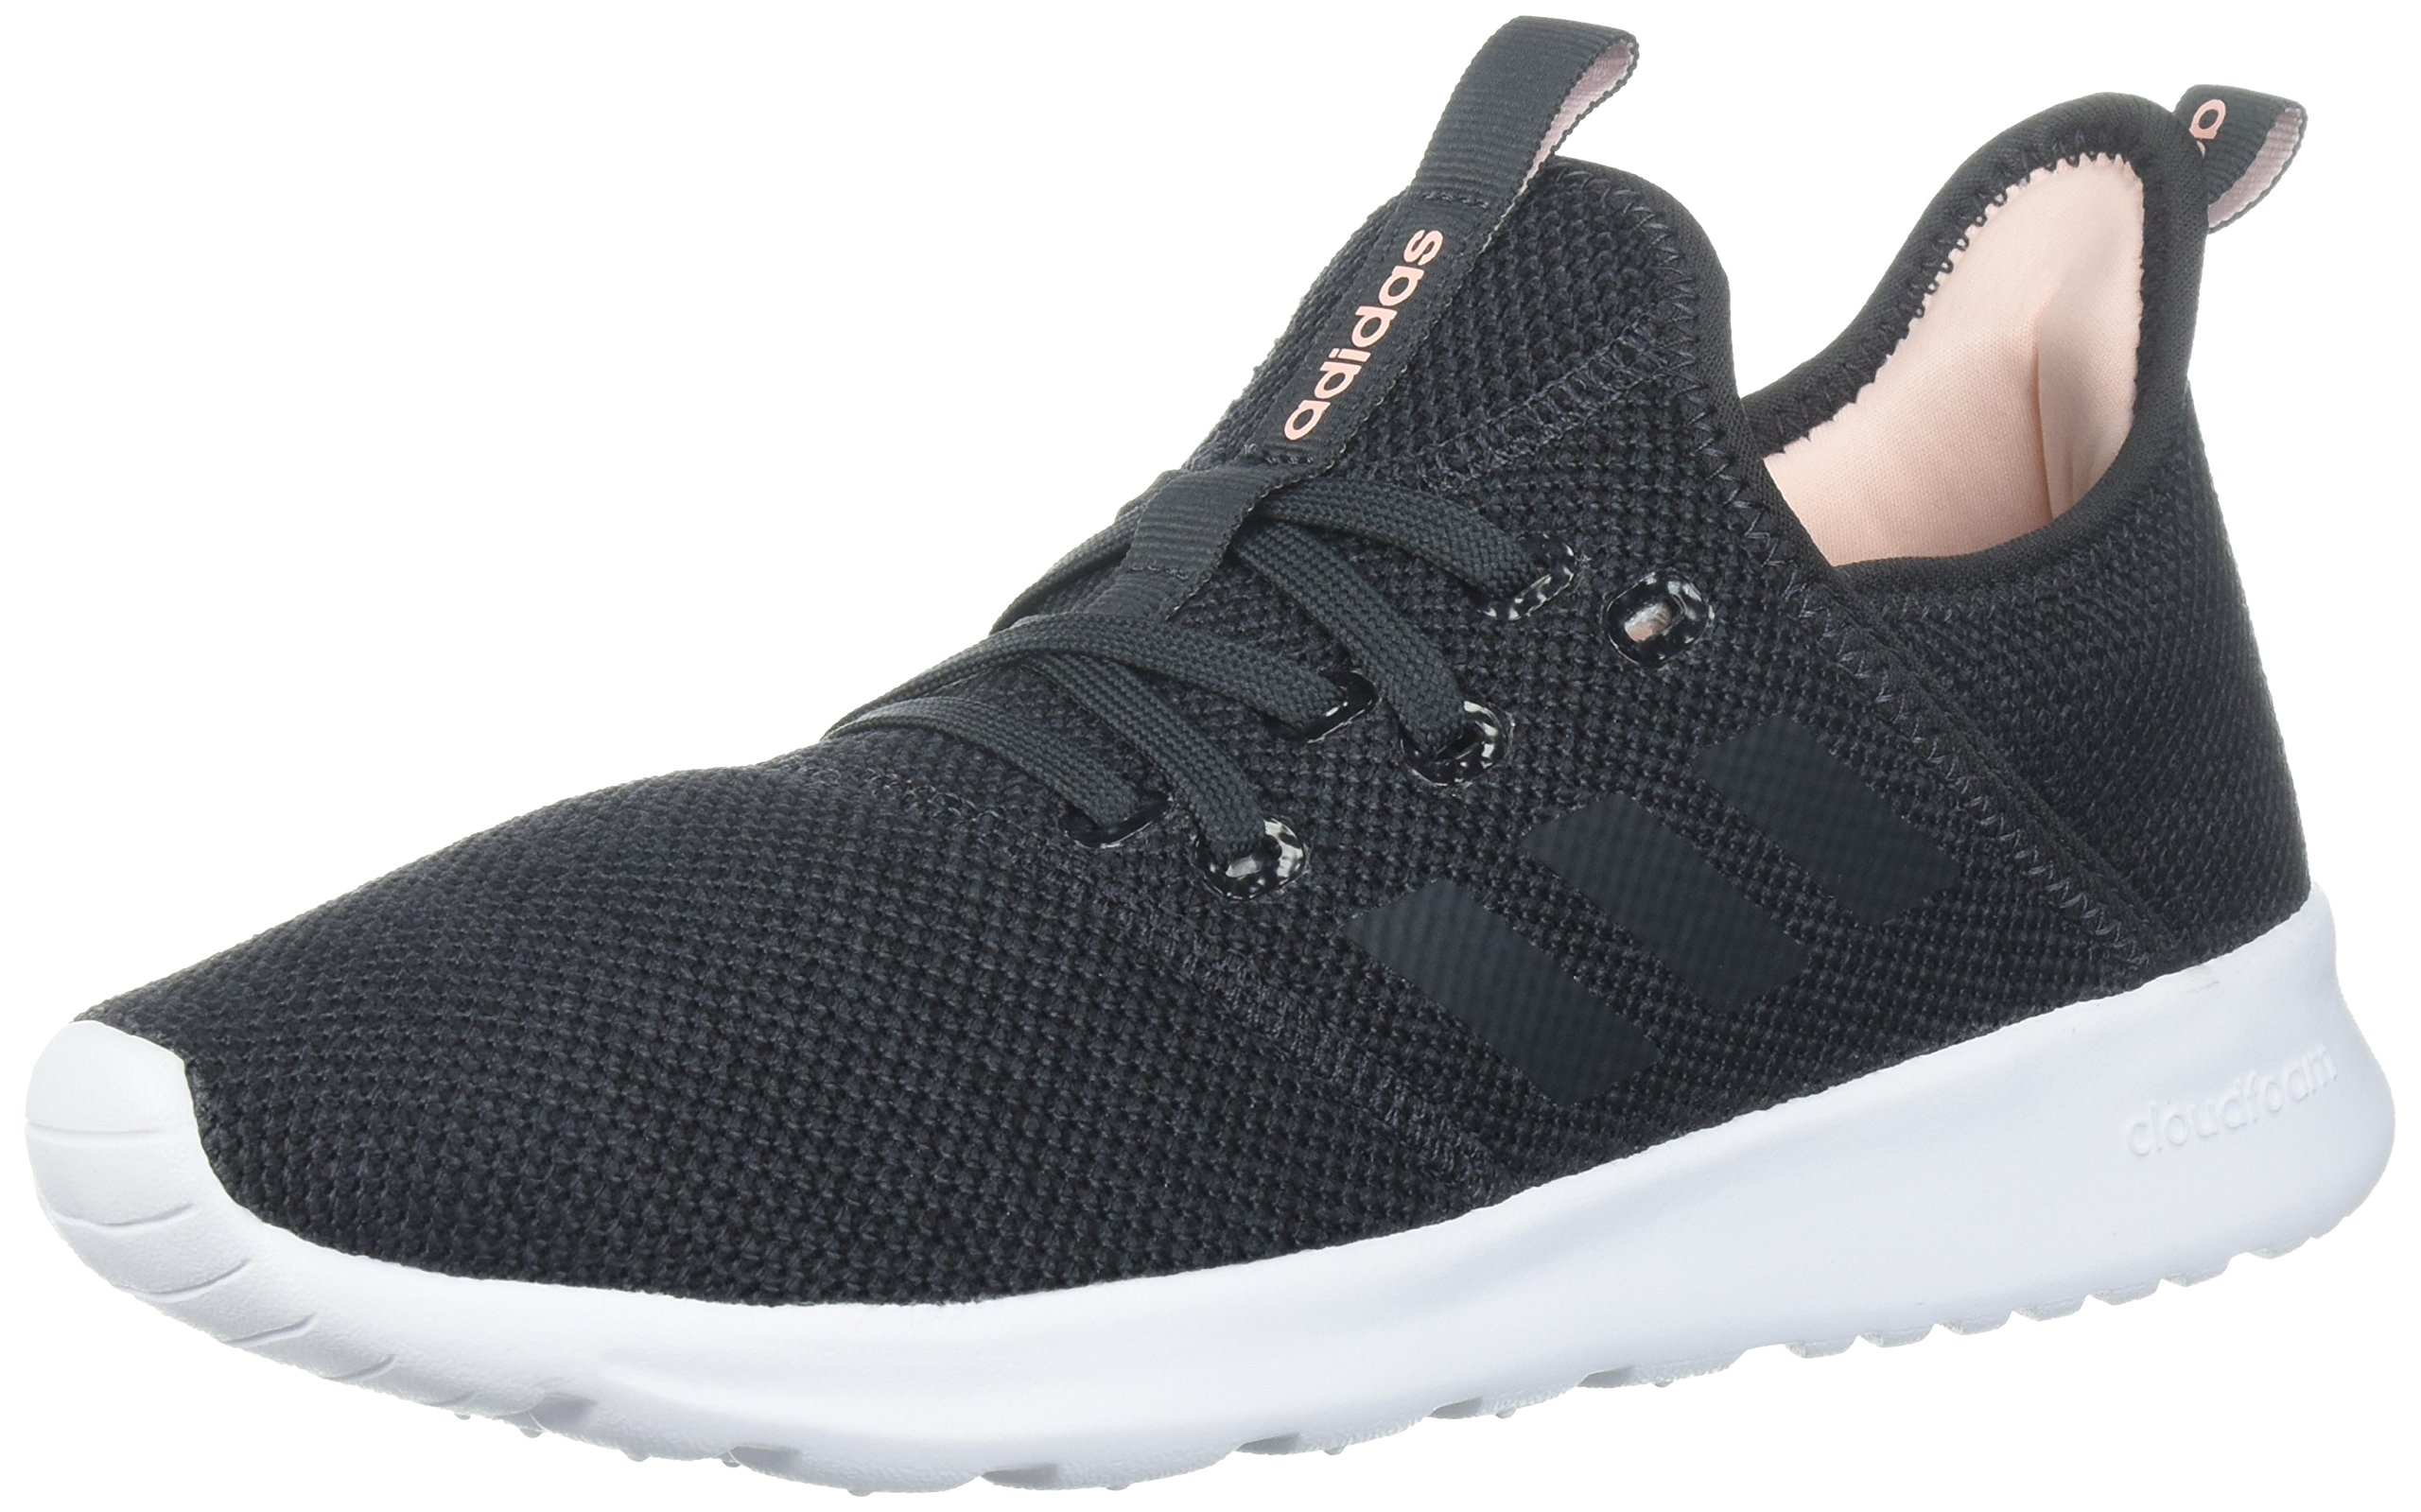 adidas Performance Women's Cloudfoam Pure Running Shoe, Carbon/Carbon, 5 M US by adidas (Image #1)